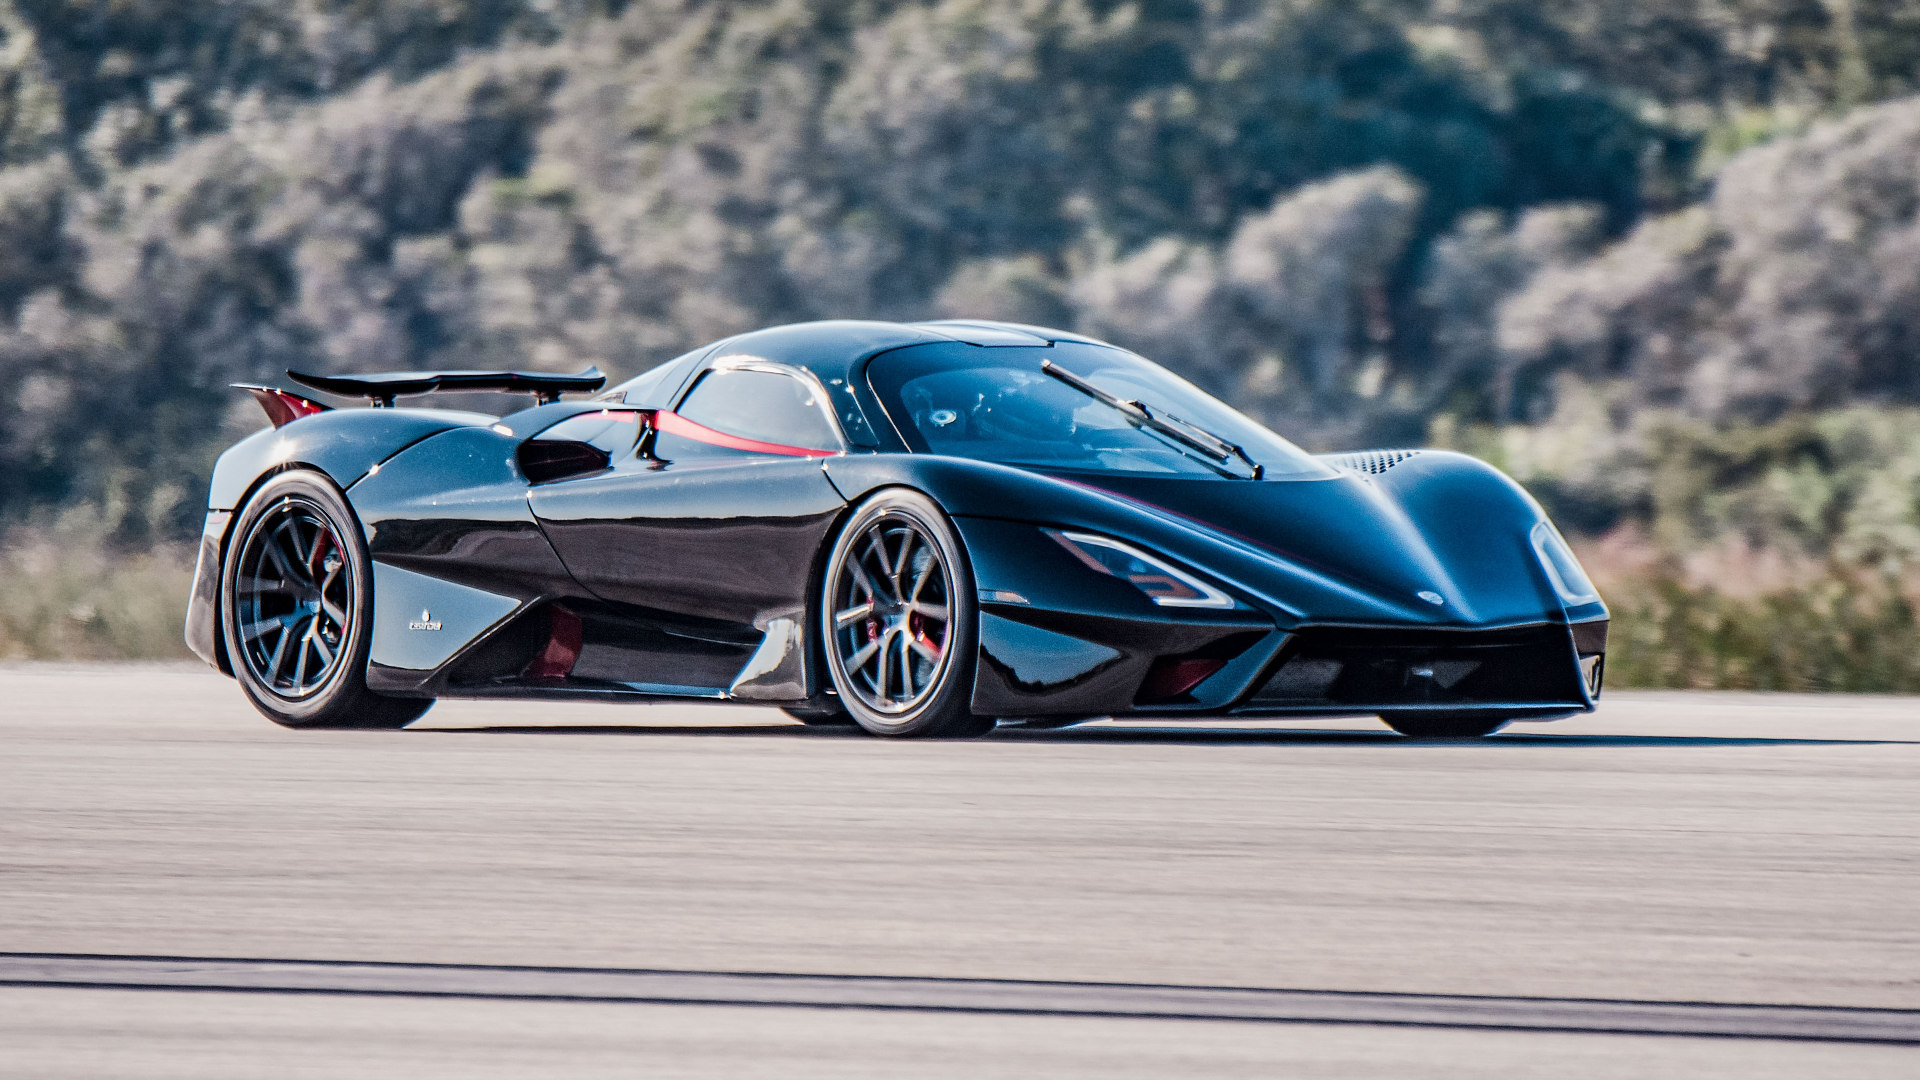 The SSC Tuatara is officially the world's fastest production car